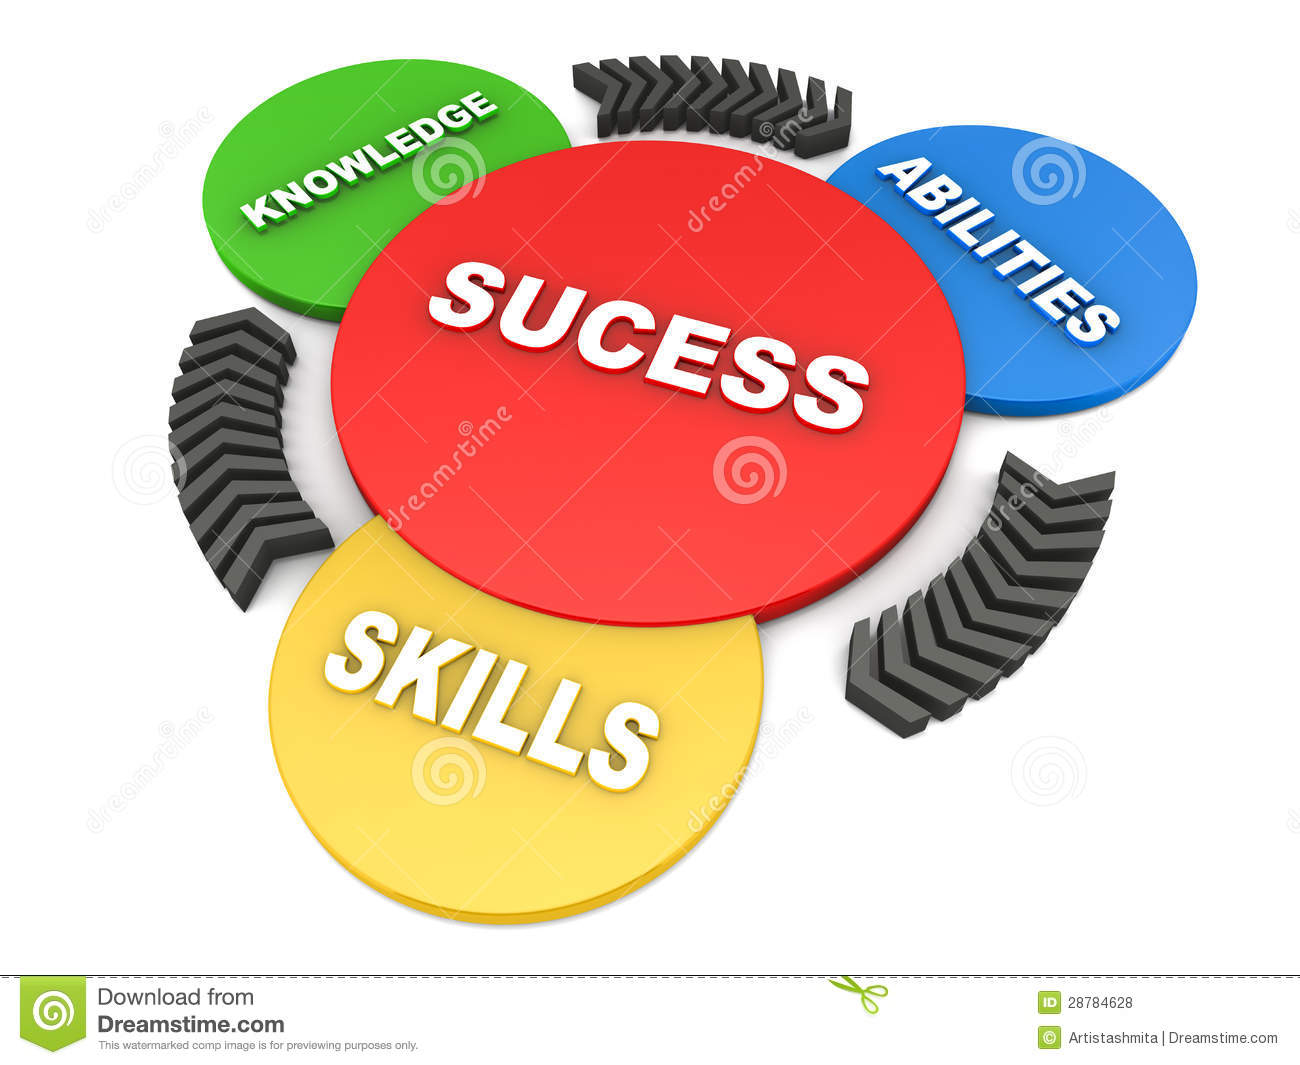 success-knowledge-abilities-skills-28784628.jpg